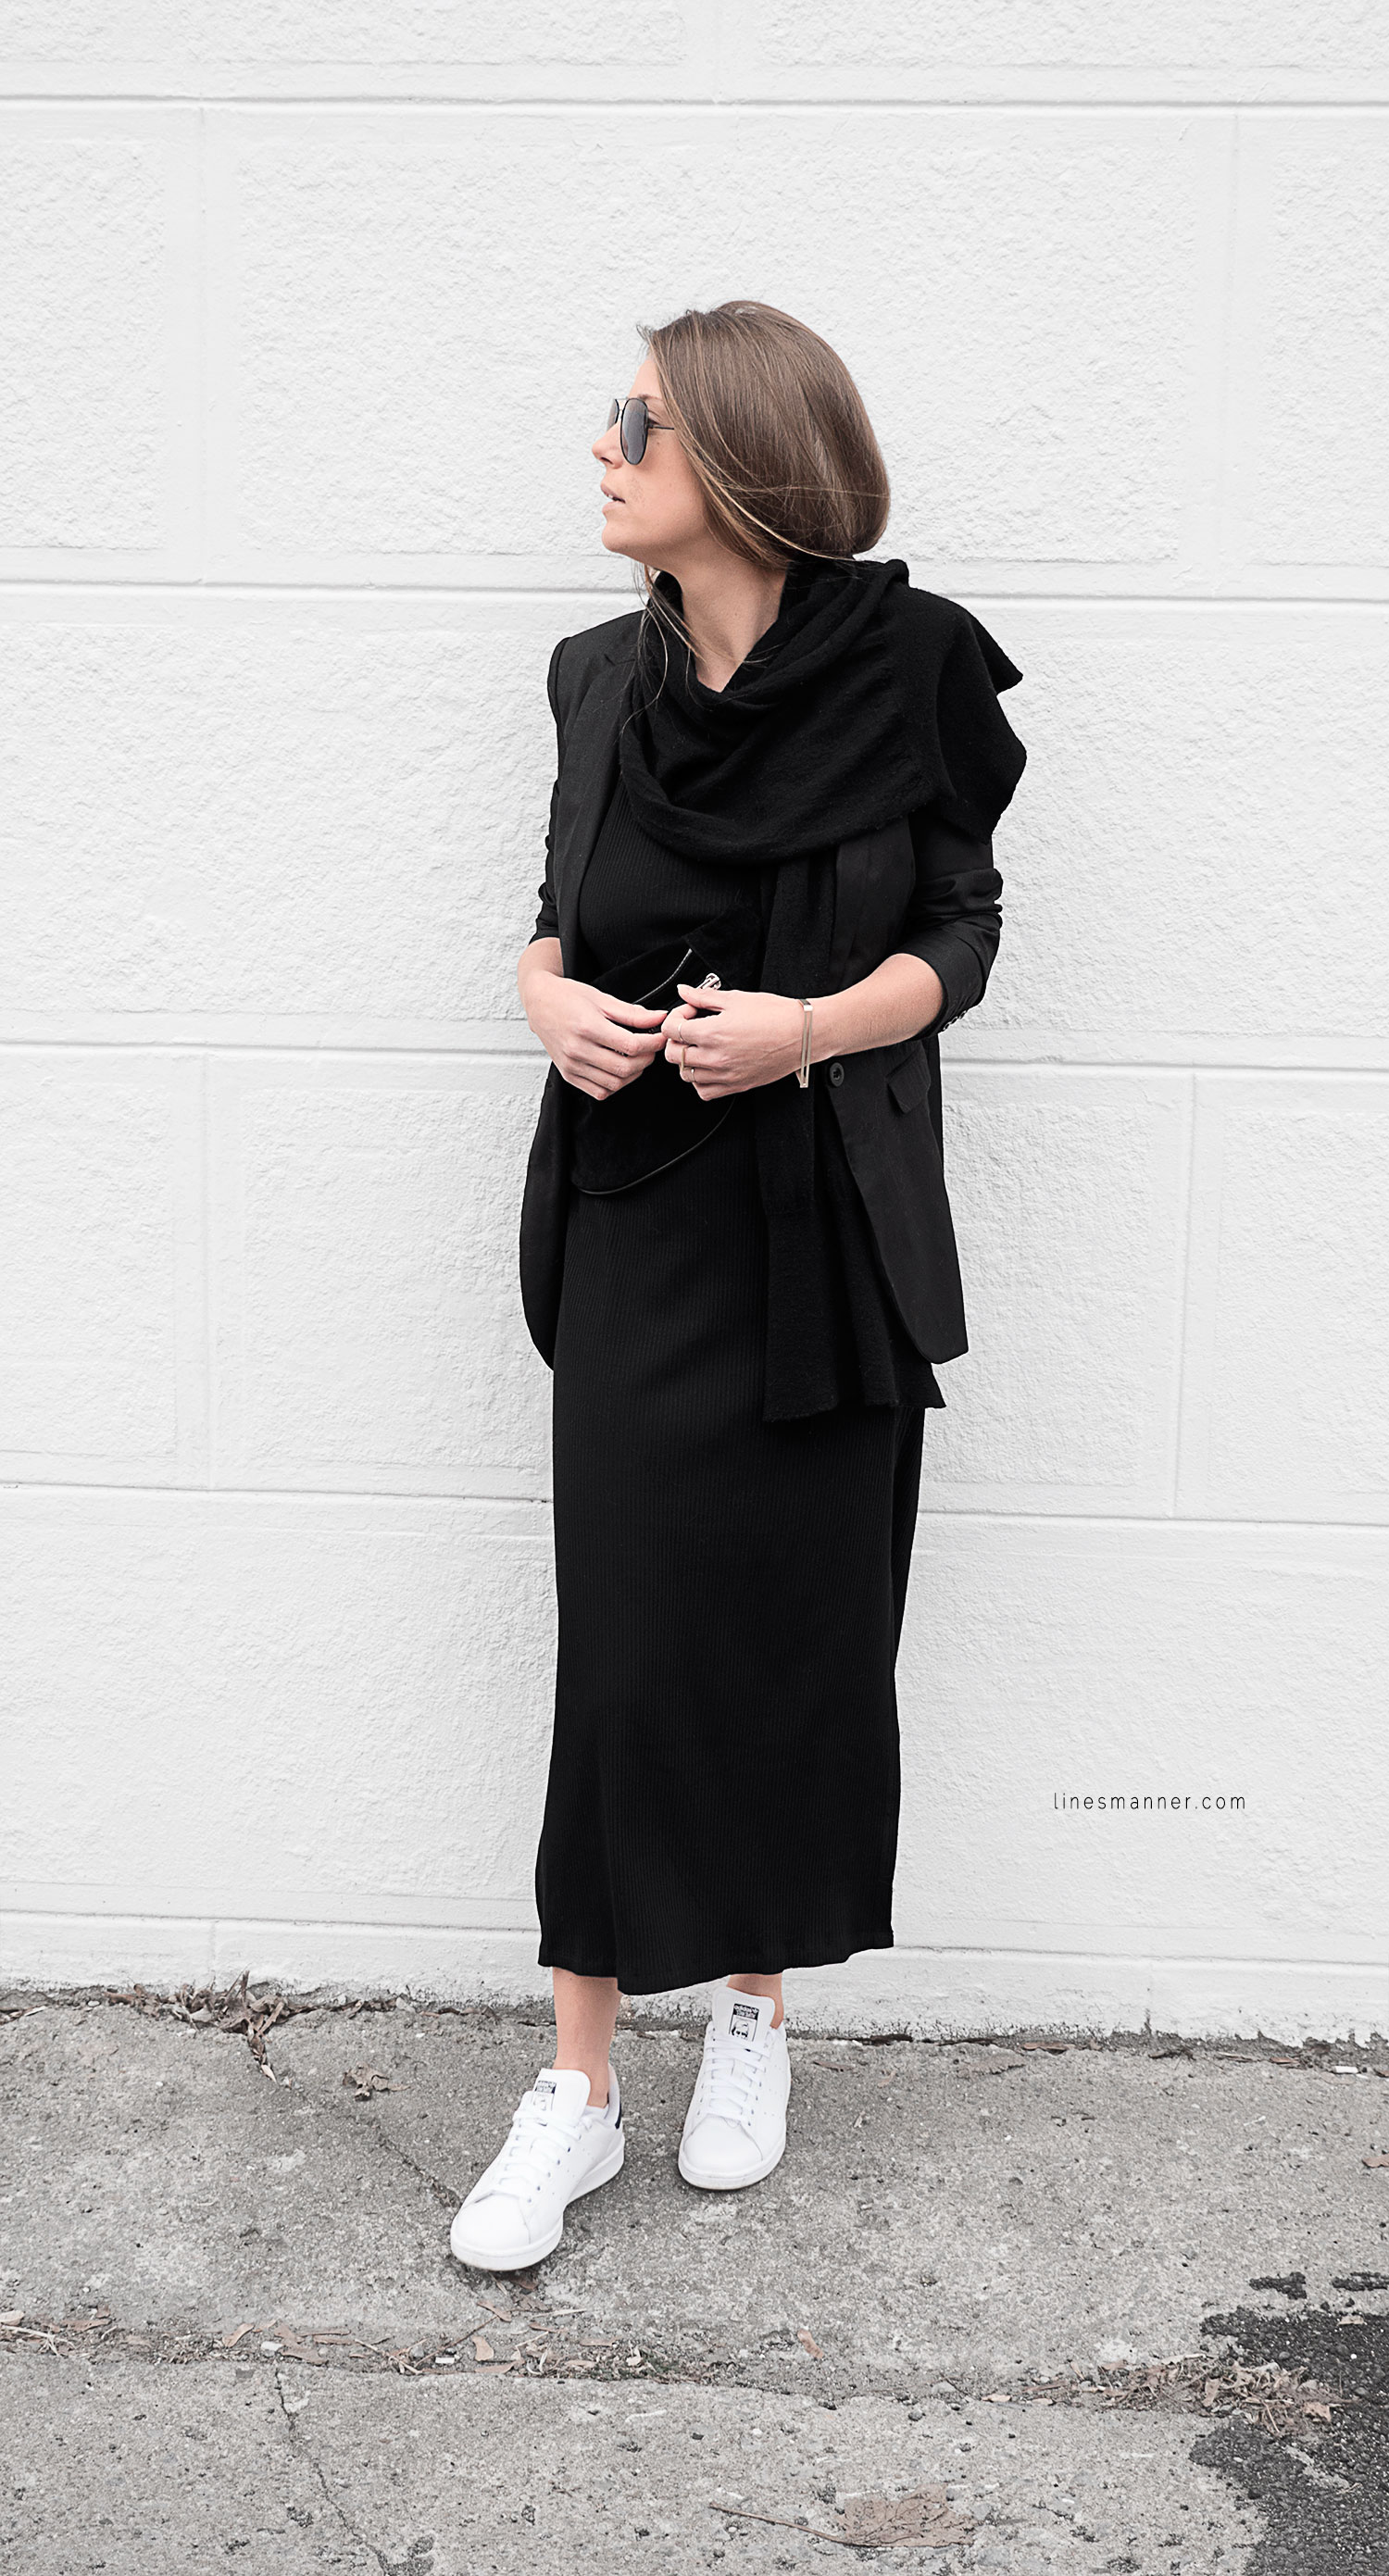 Lines-Manner-Black-Relaxed-Tone_on_Tone-Monochrome-Minimal-Sophistication-Comfort-Modern-Simplicity-Casual-Sporty_Luxe-Slit_Dress-Thrid_Form-Blazer-Essentials-Details-Basics-Timeless-Verstatile-Staple-Wardrobe-Sleek-Clean_Lines-All_Black_Everything-6